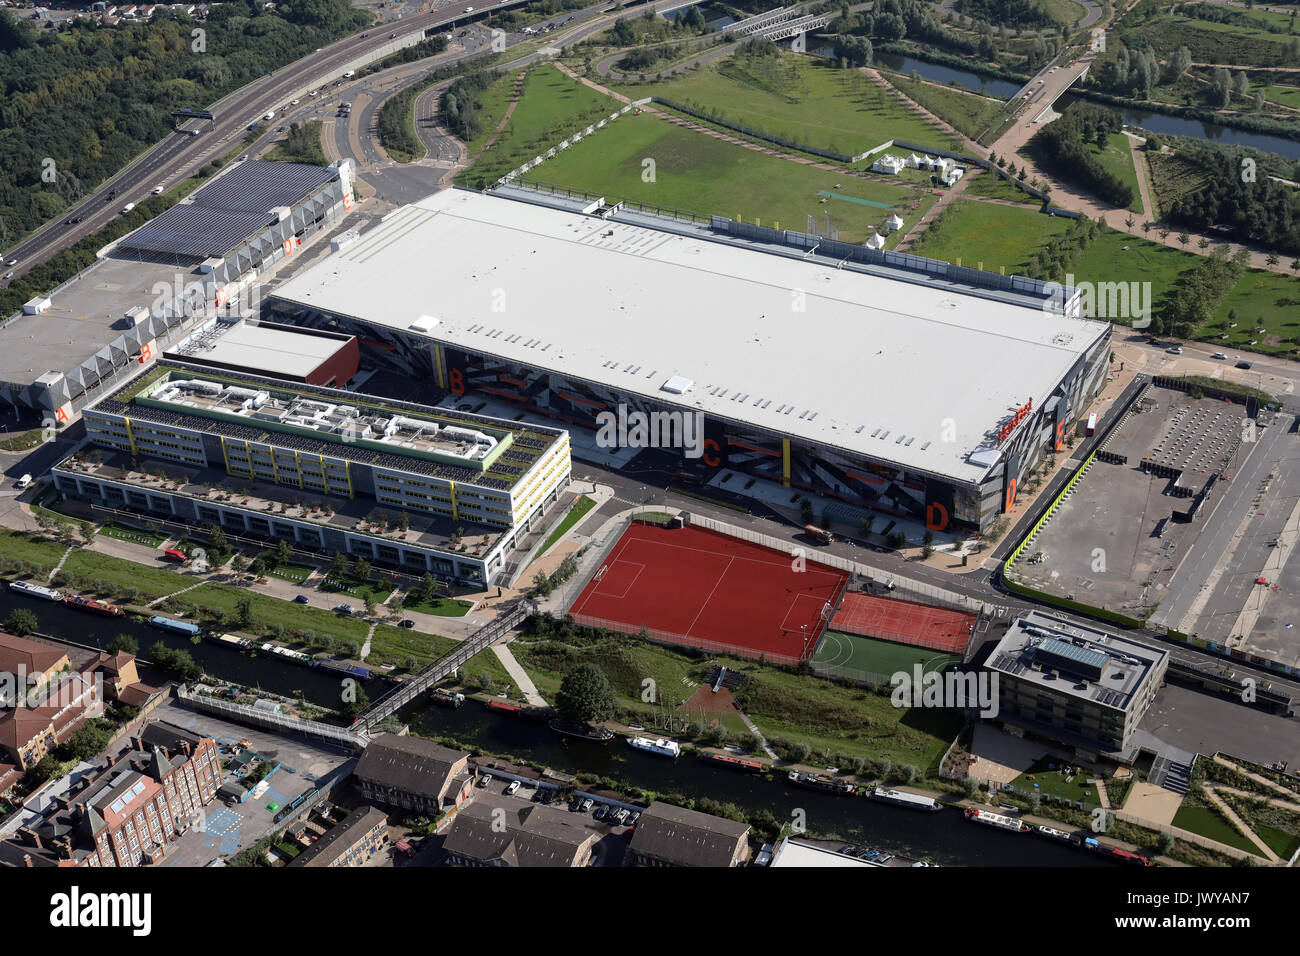 aerial view of Here East, BT Sport HQ & Loughborough University London, UK - Stock Image